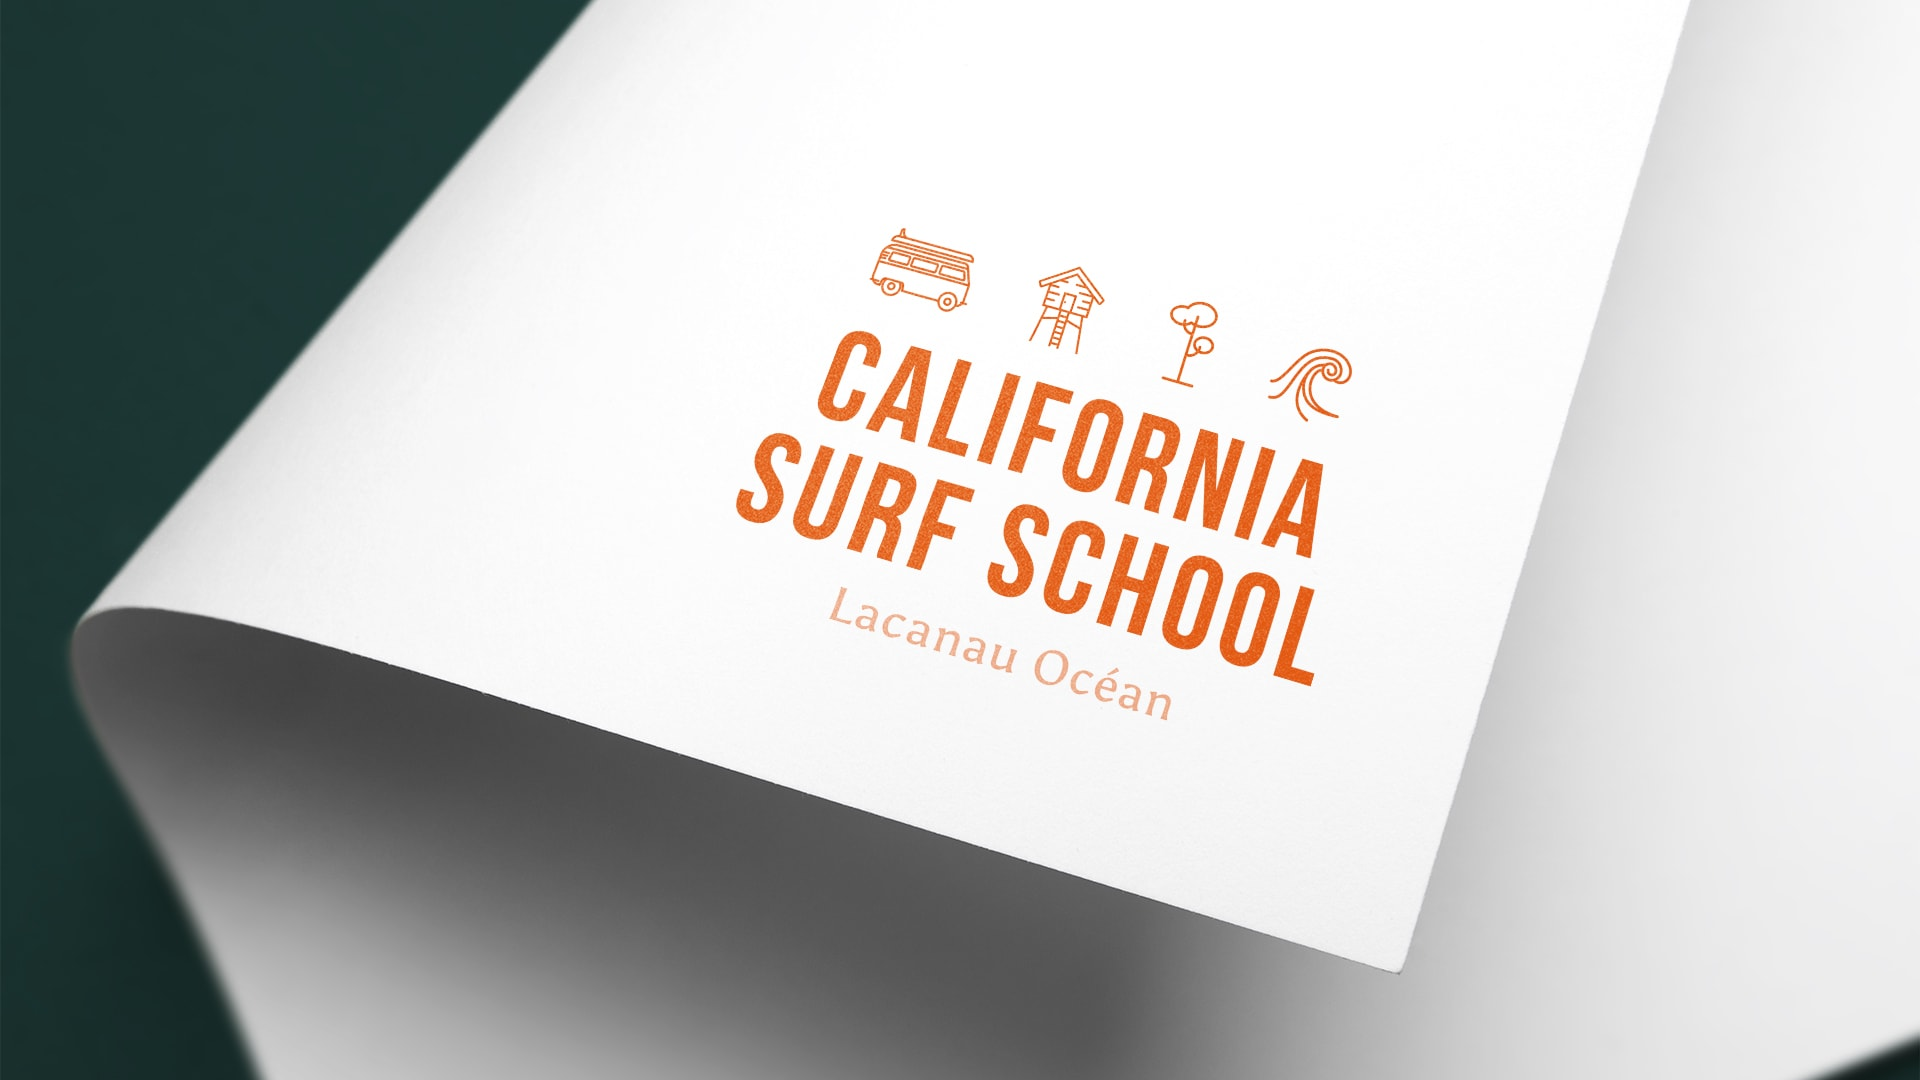 Nest_Site-Web_Portfilio_Contenu_CaliforniaSurfSchool_05-min California Surf School